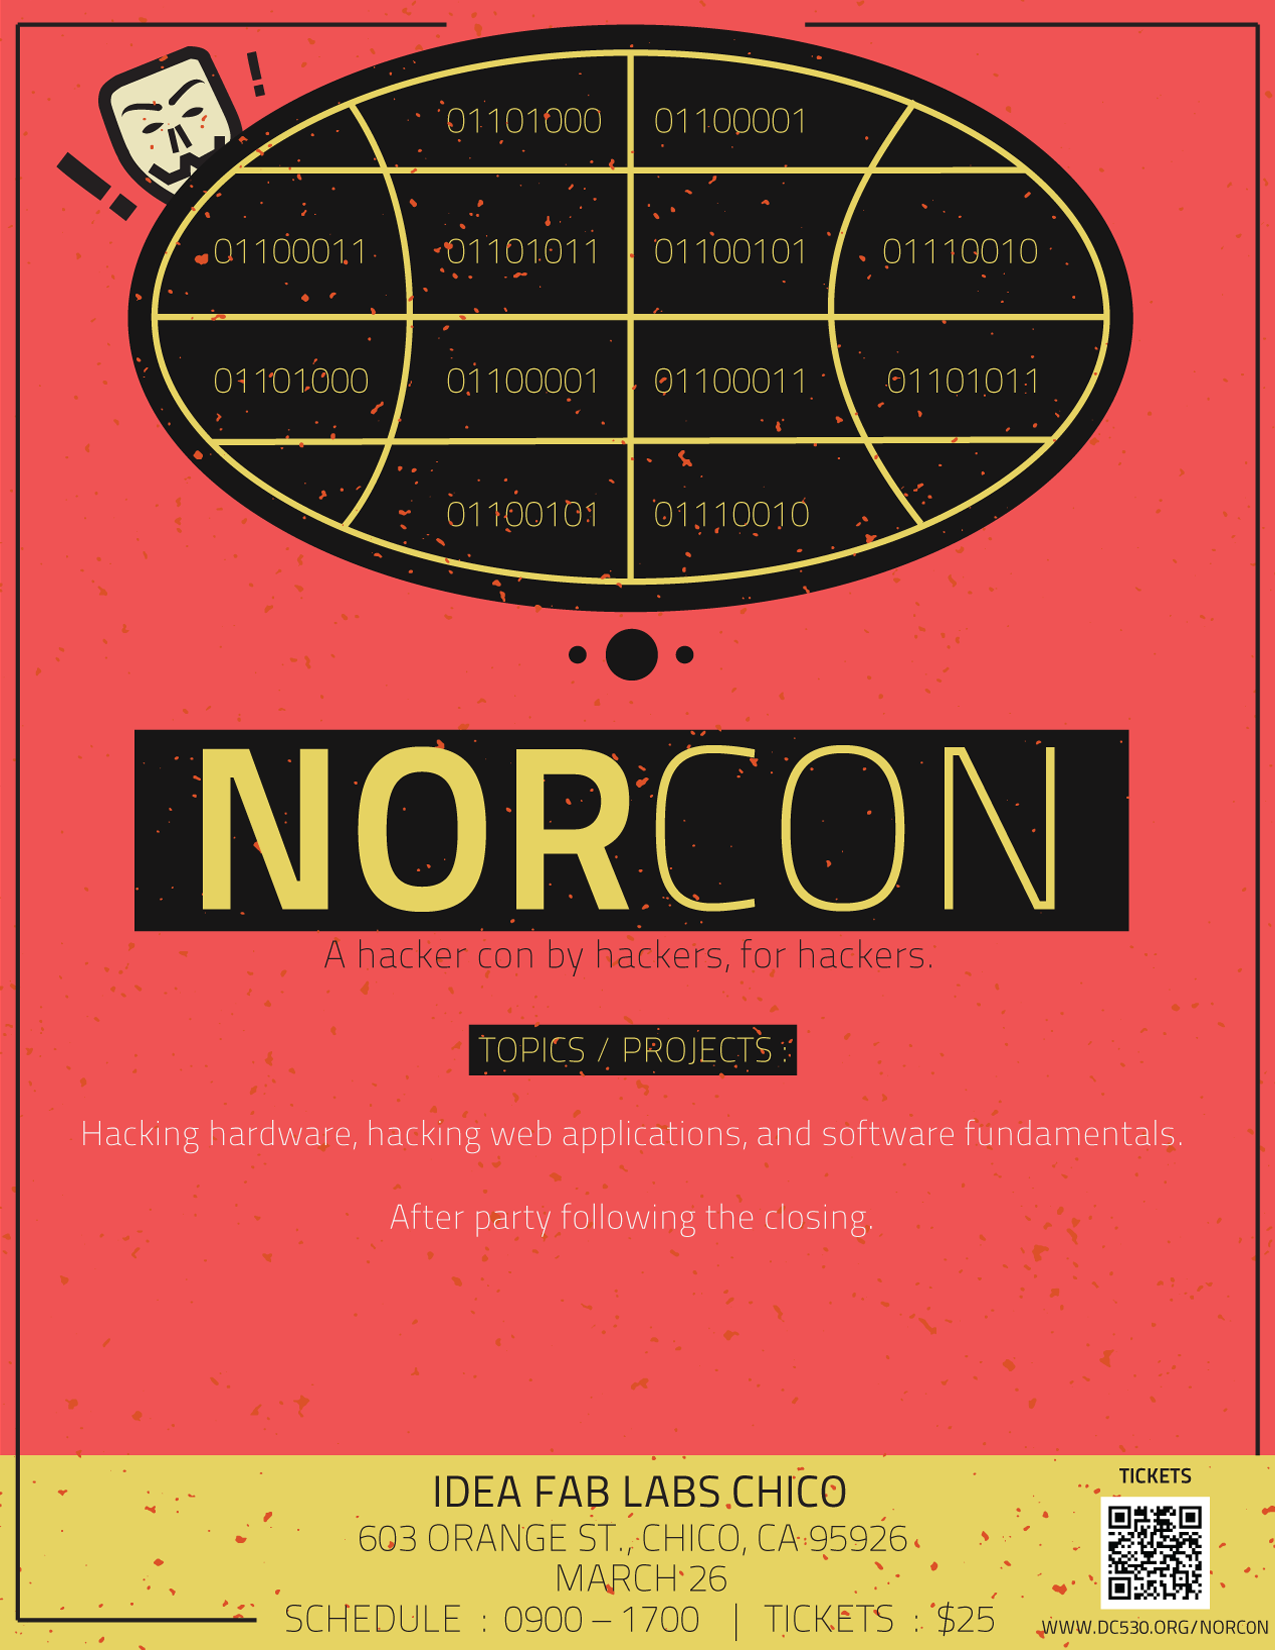 NorCon flyer for upcoming event. Photo Credit: From the Facebook